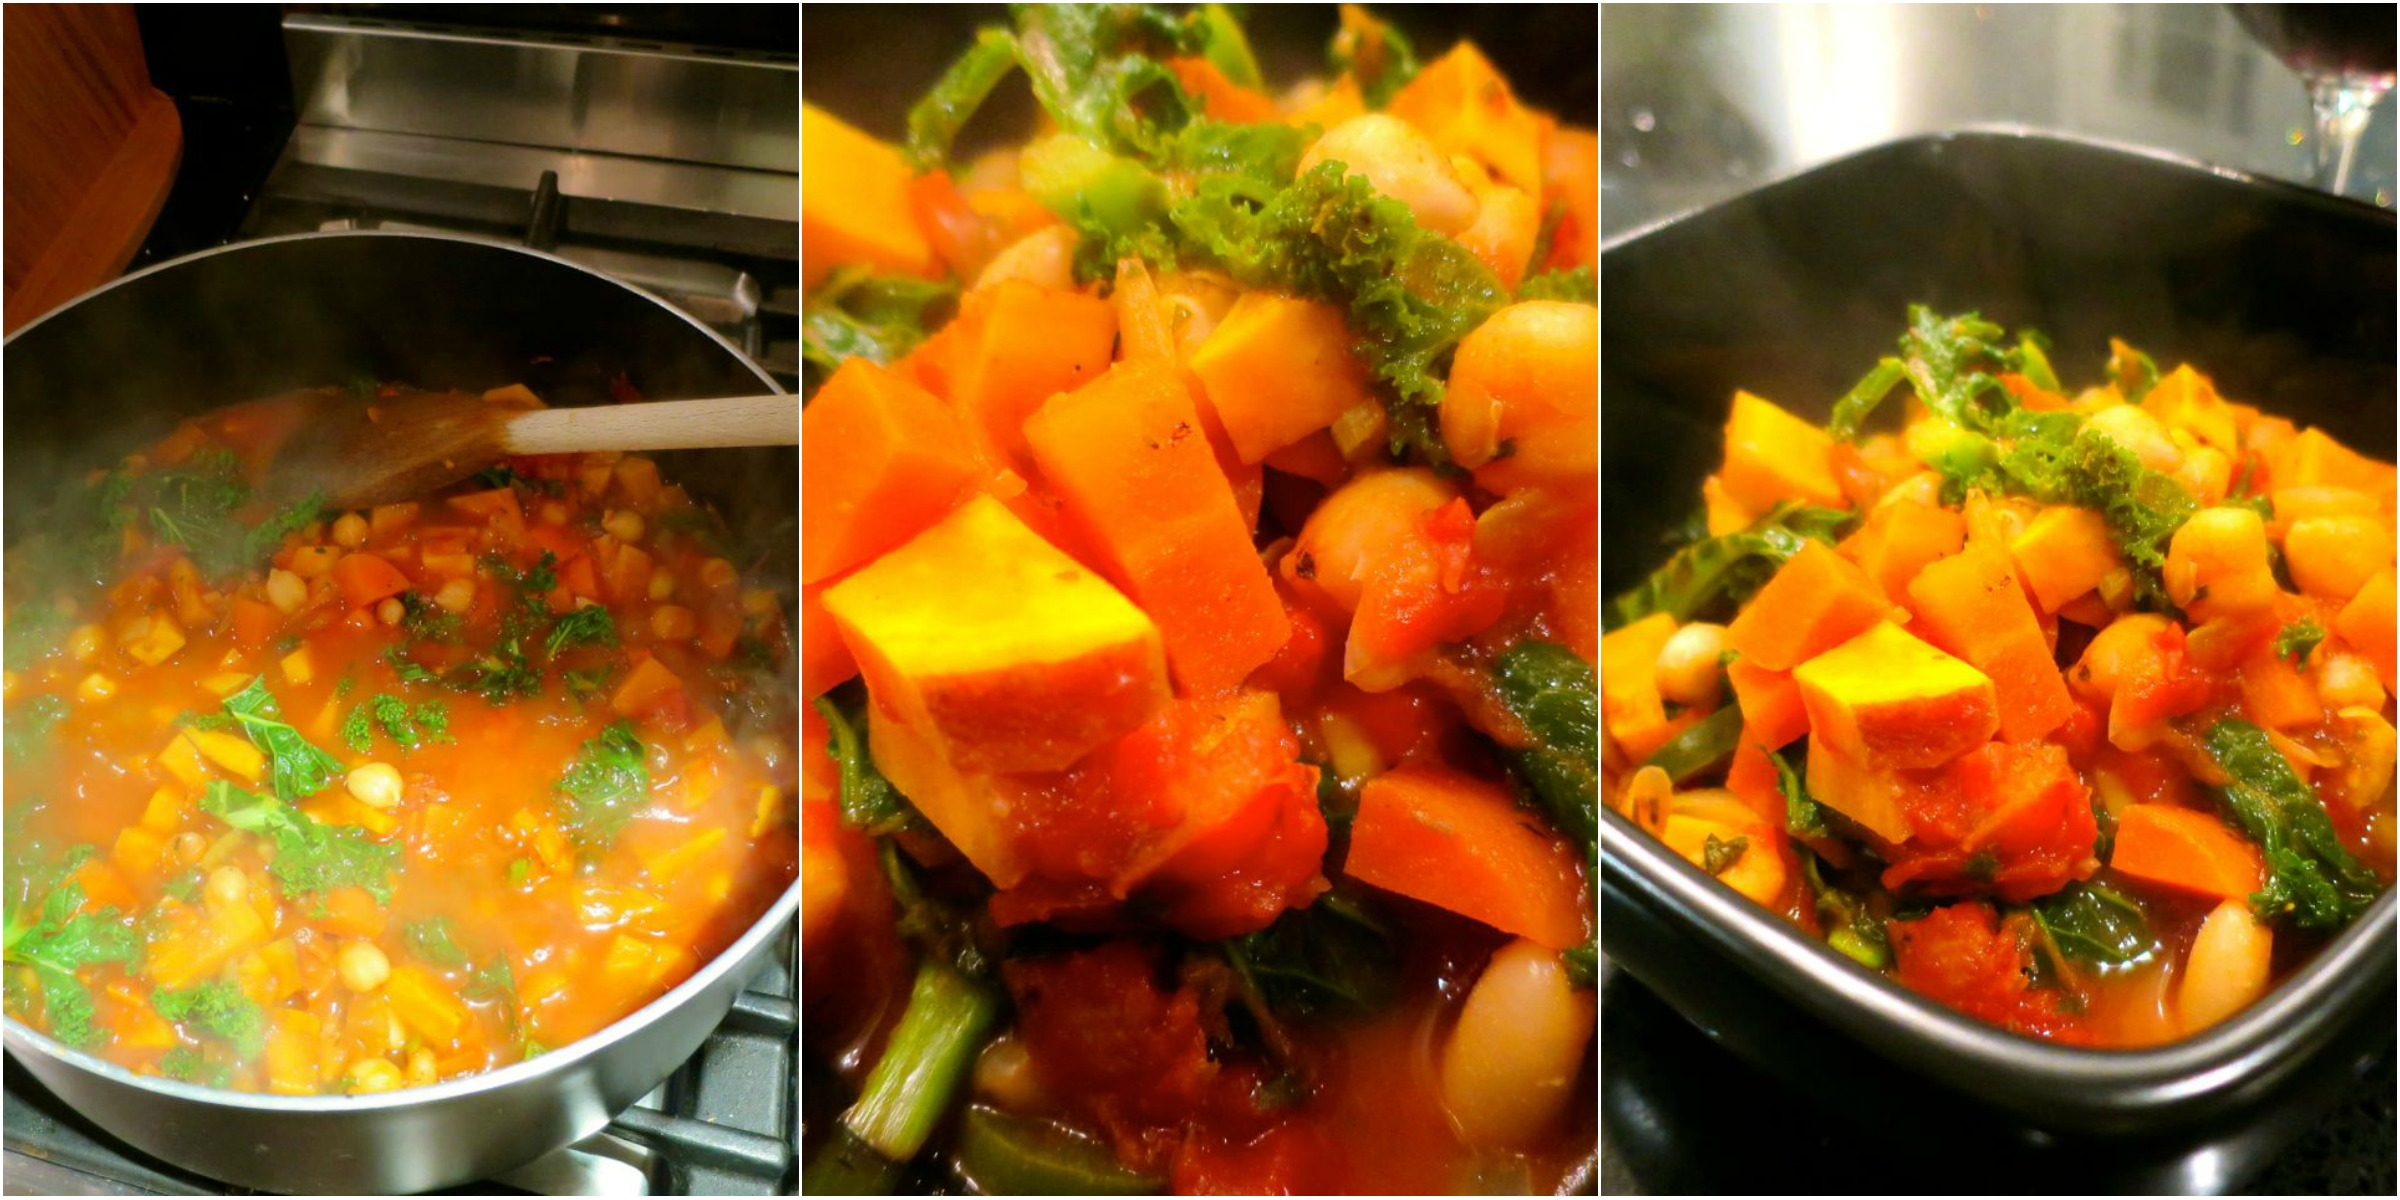 Warming Kale and Chickpea Stew